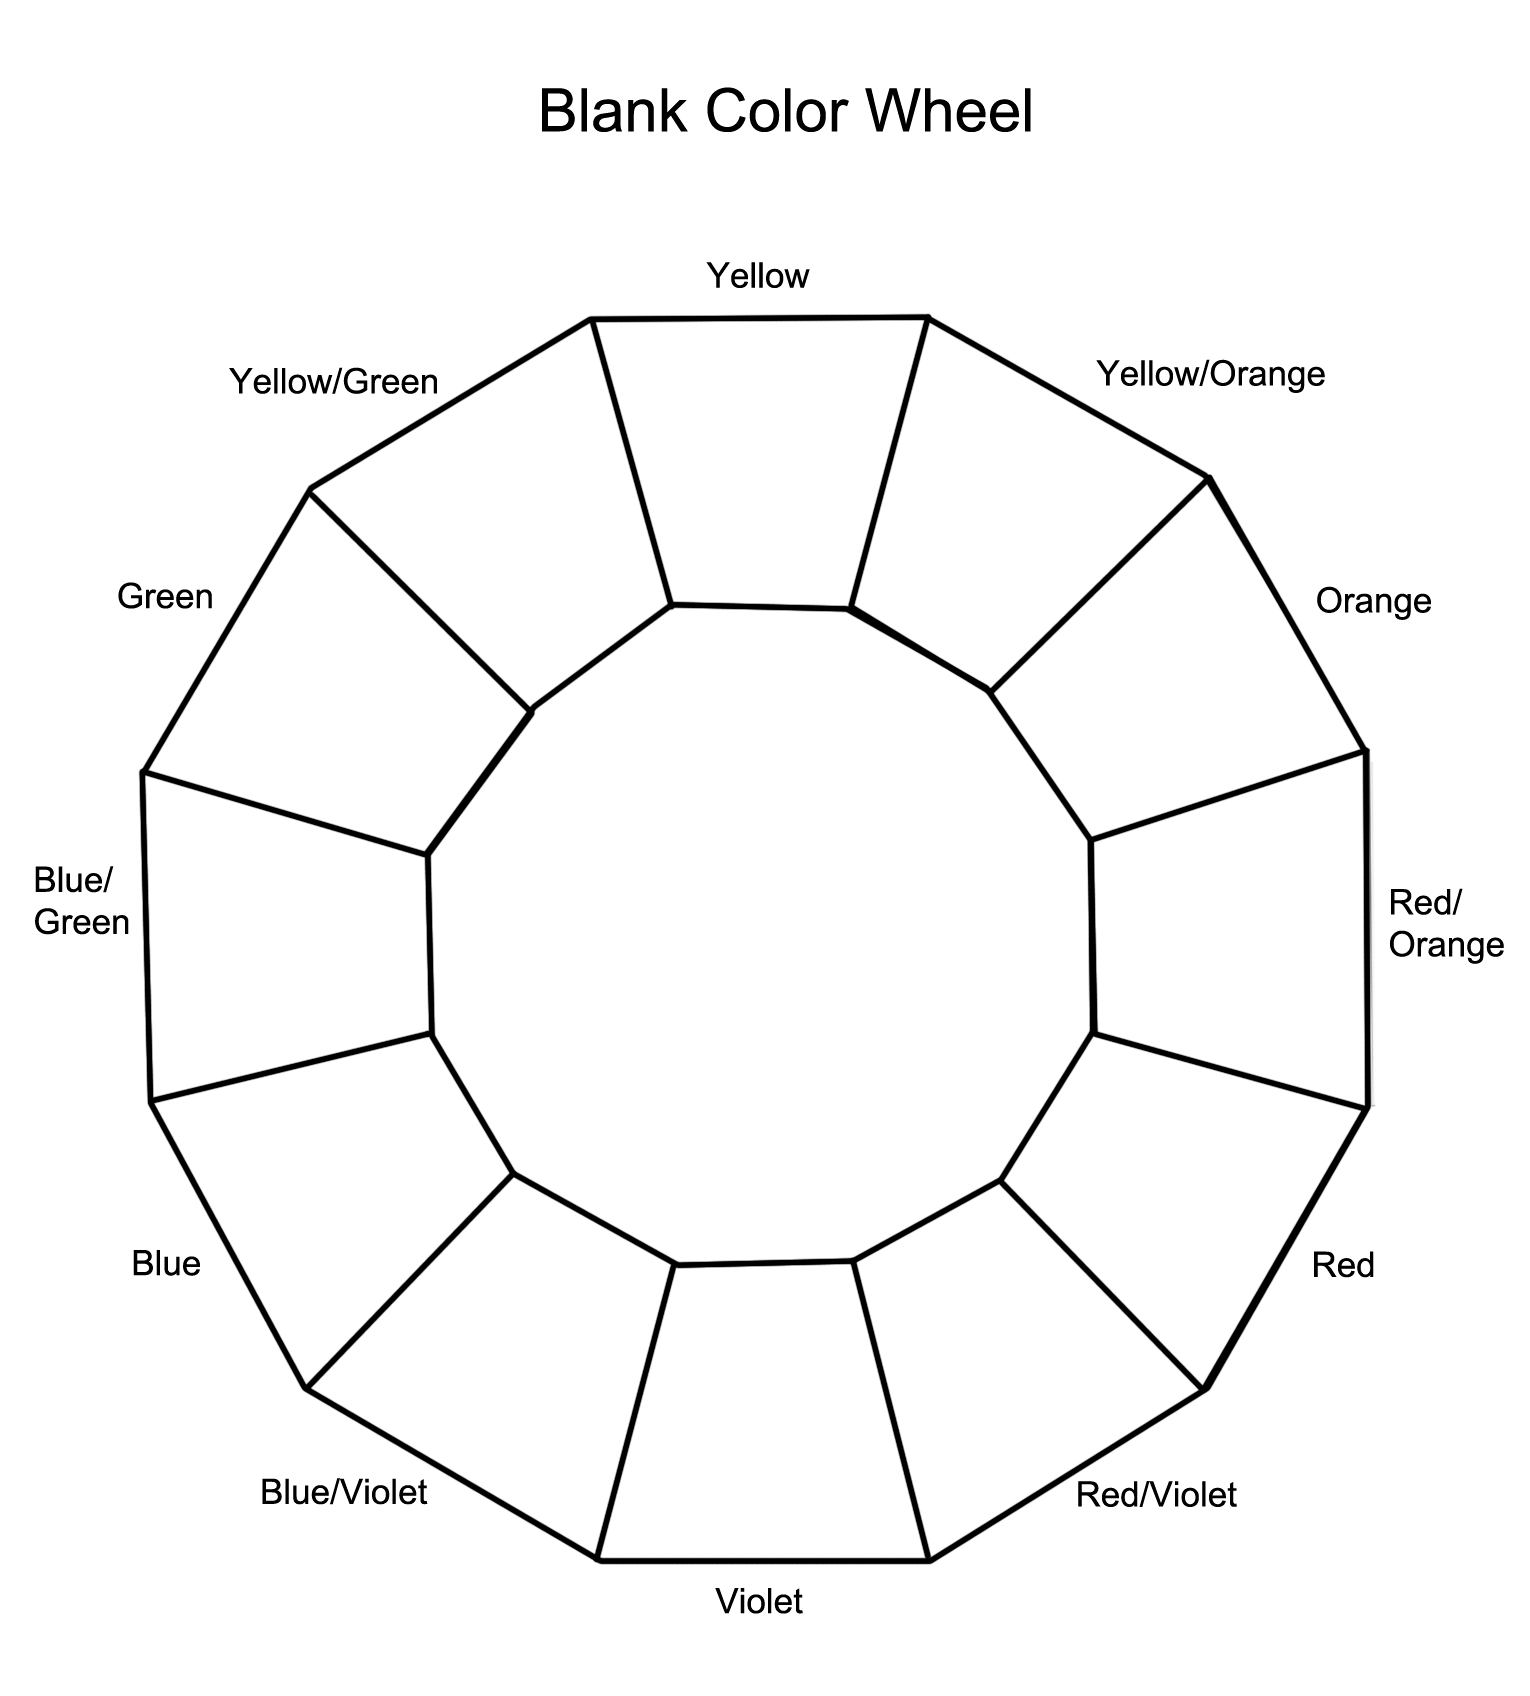 12 Section Colour Wheel